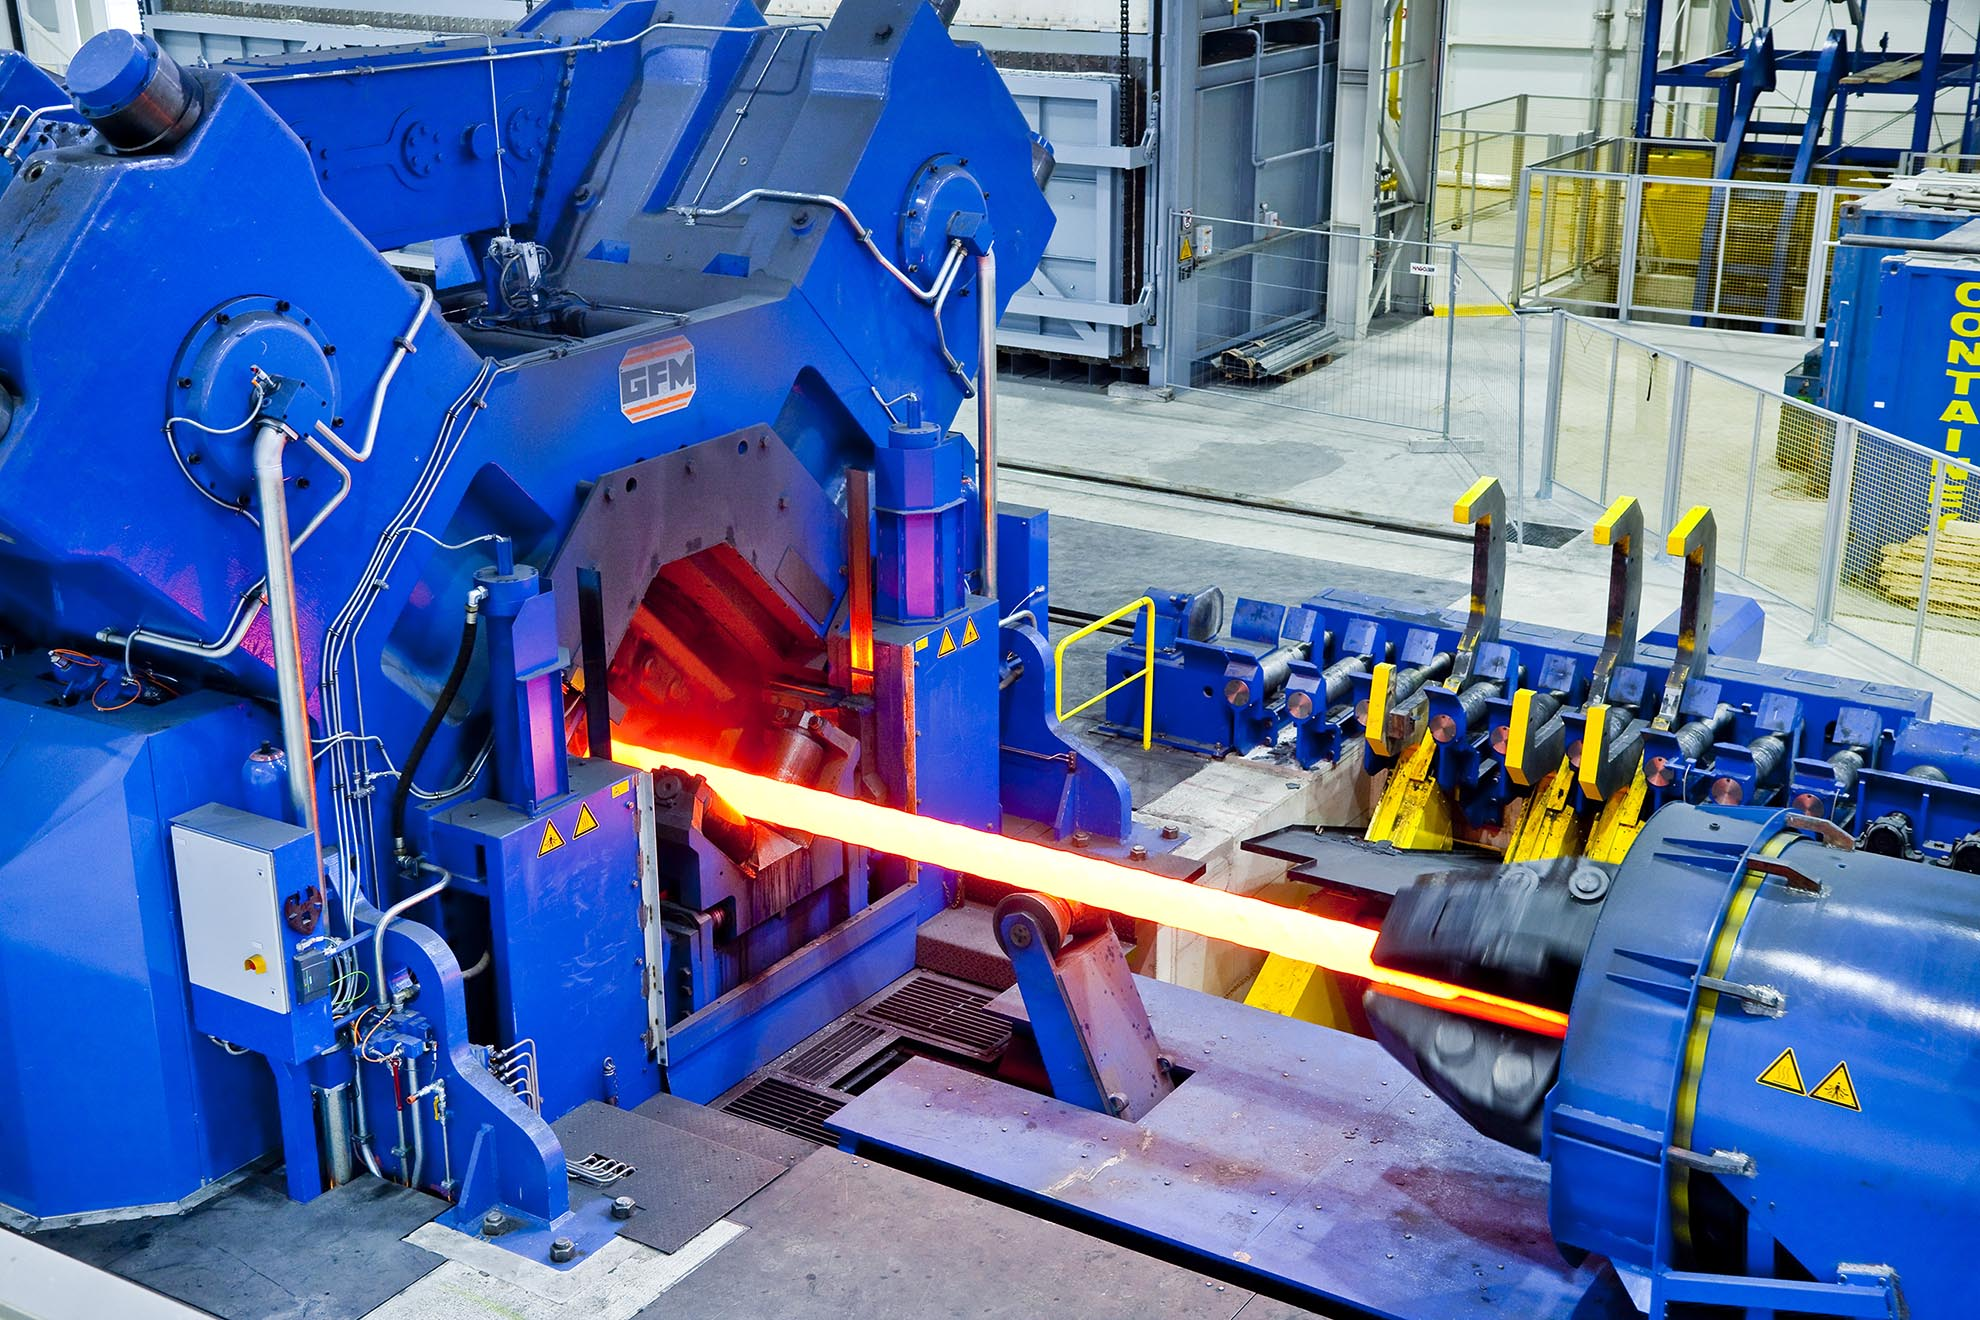 Factory fabrication equipment and devices for heating